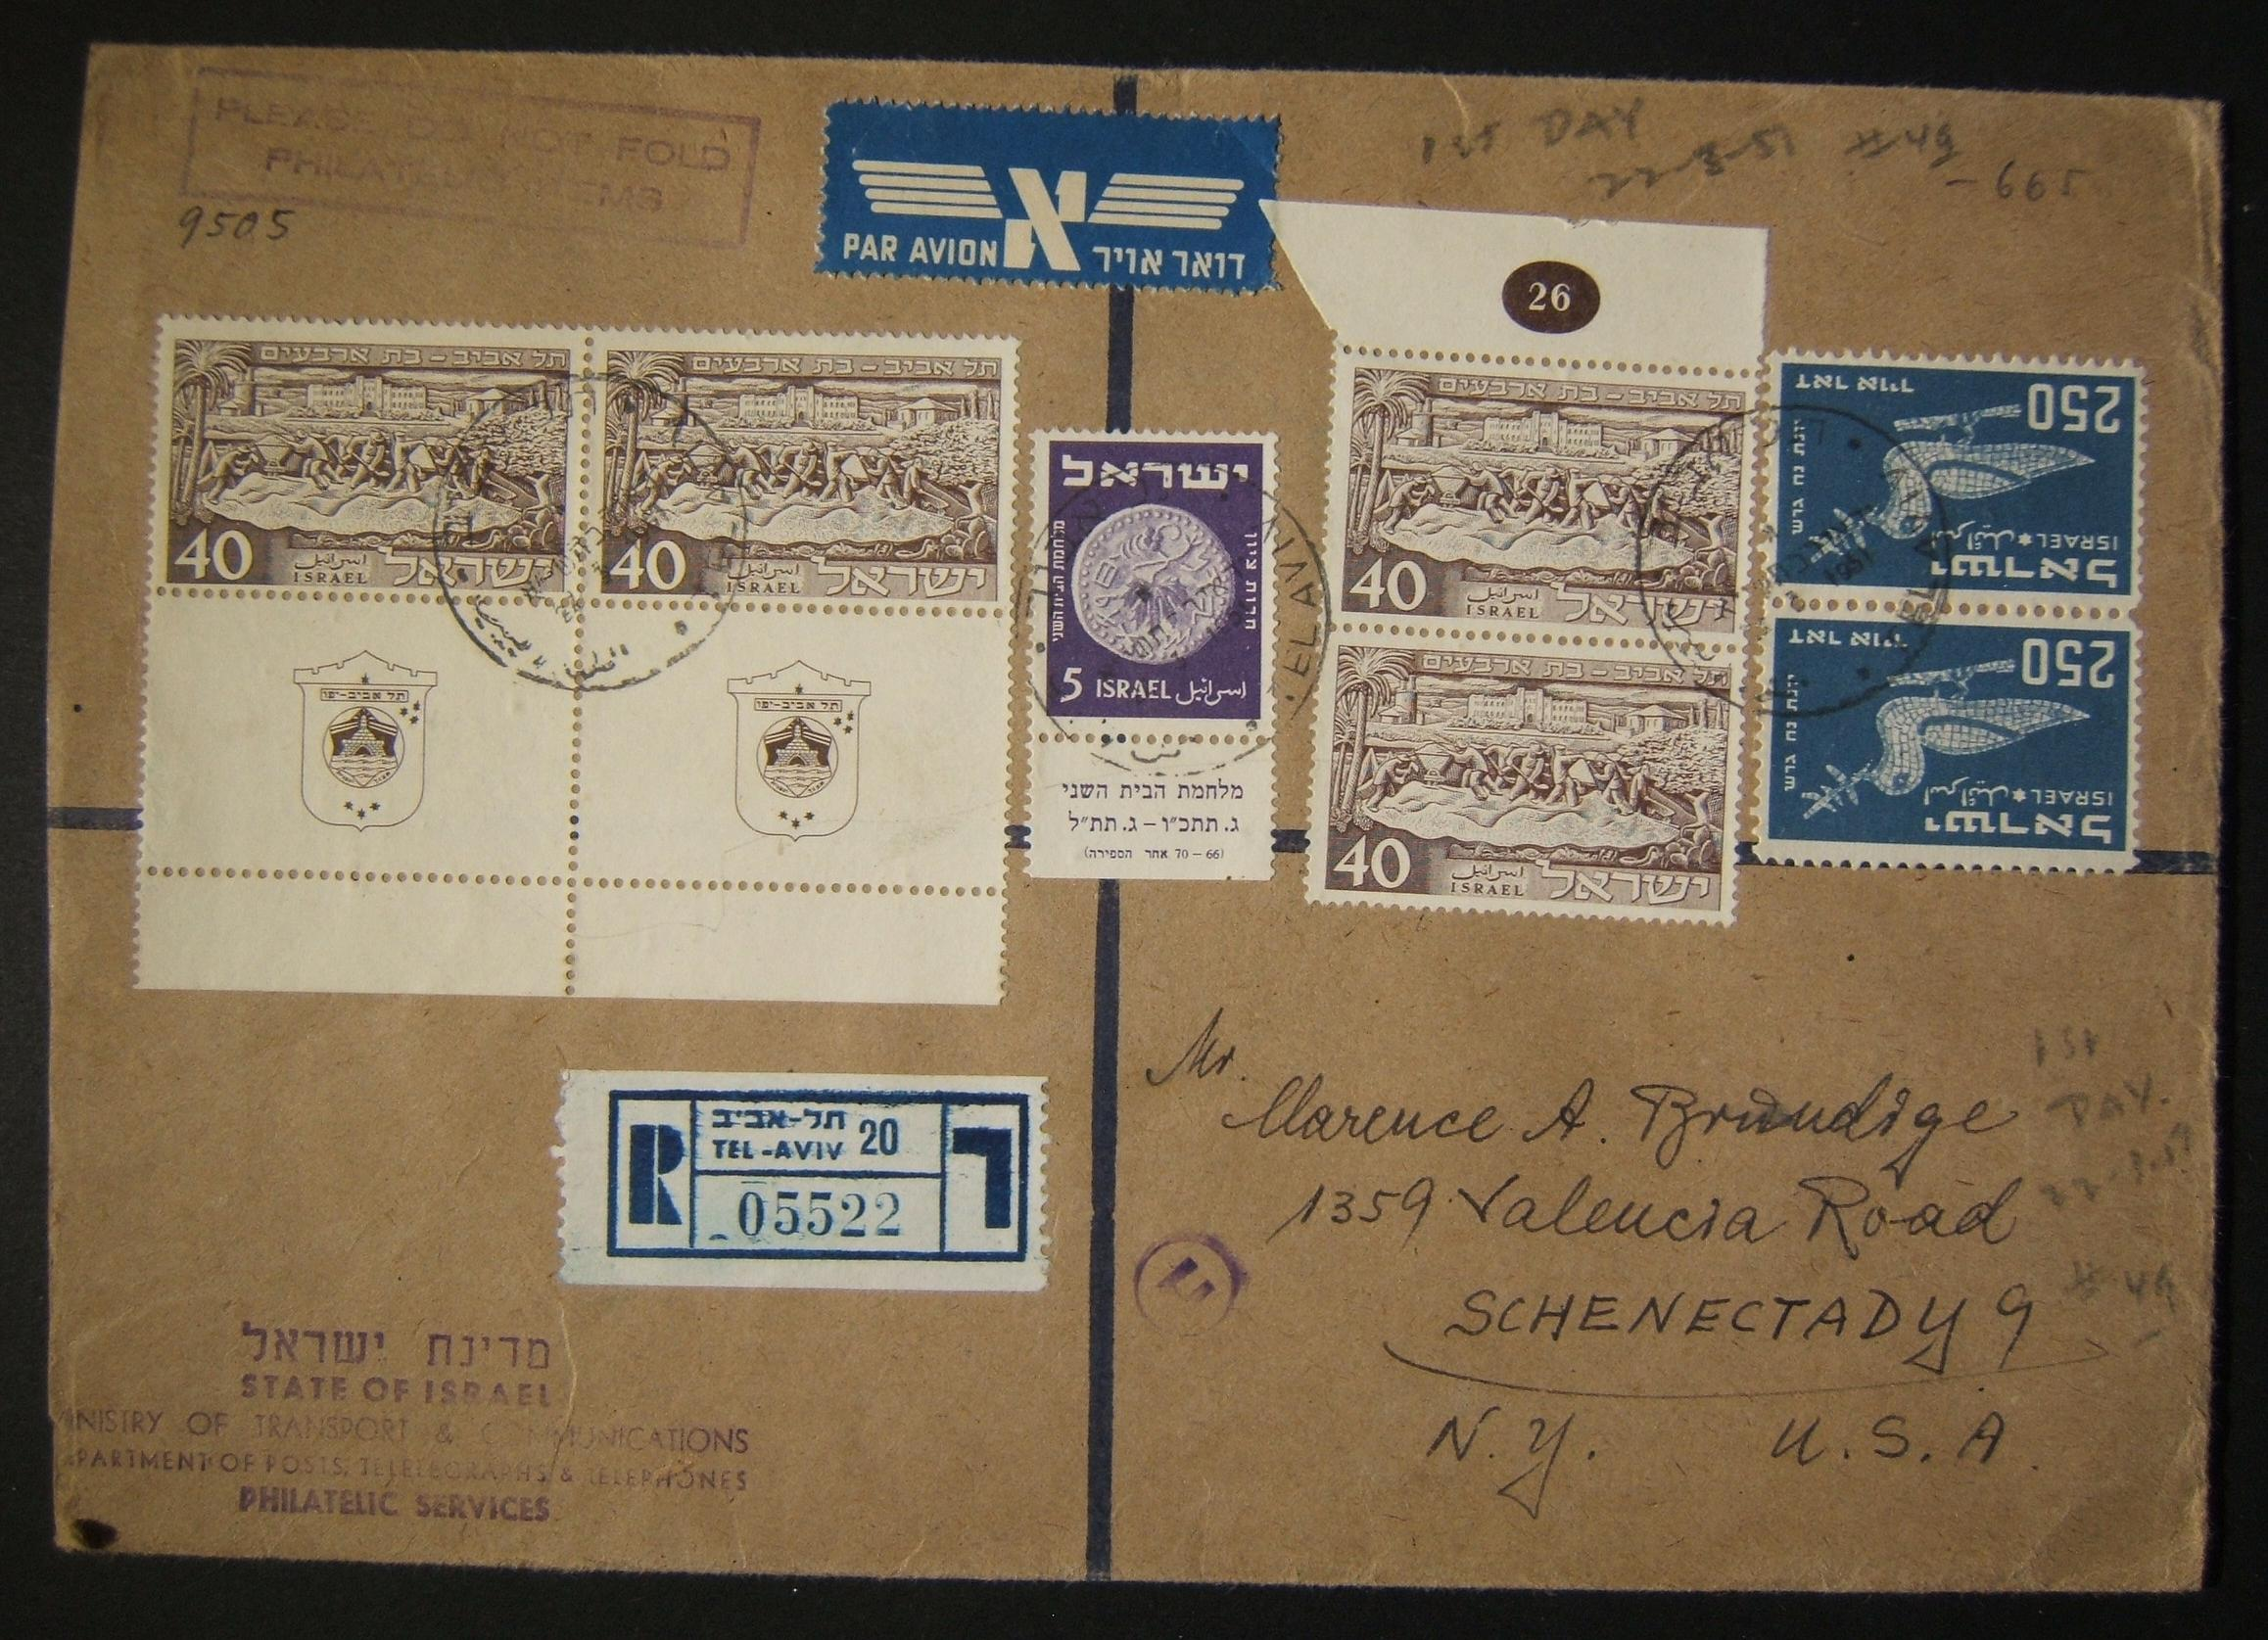 22-3-1951 heavy mail OHMS Reg. Envelope (No.172) ex TLV to NEW YORK franked 665pr at the FA-2a period rate (80pr letter + 25pr reg. + 14x40pr R-letter extra 10g we